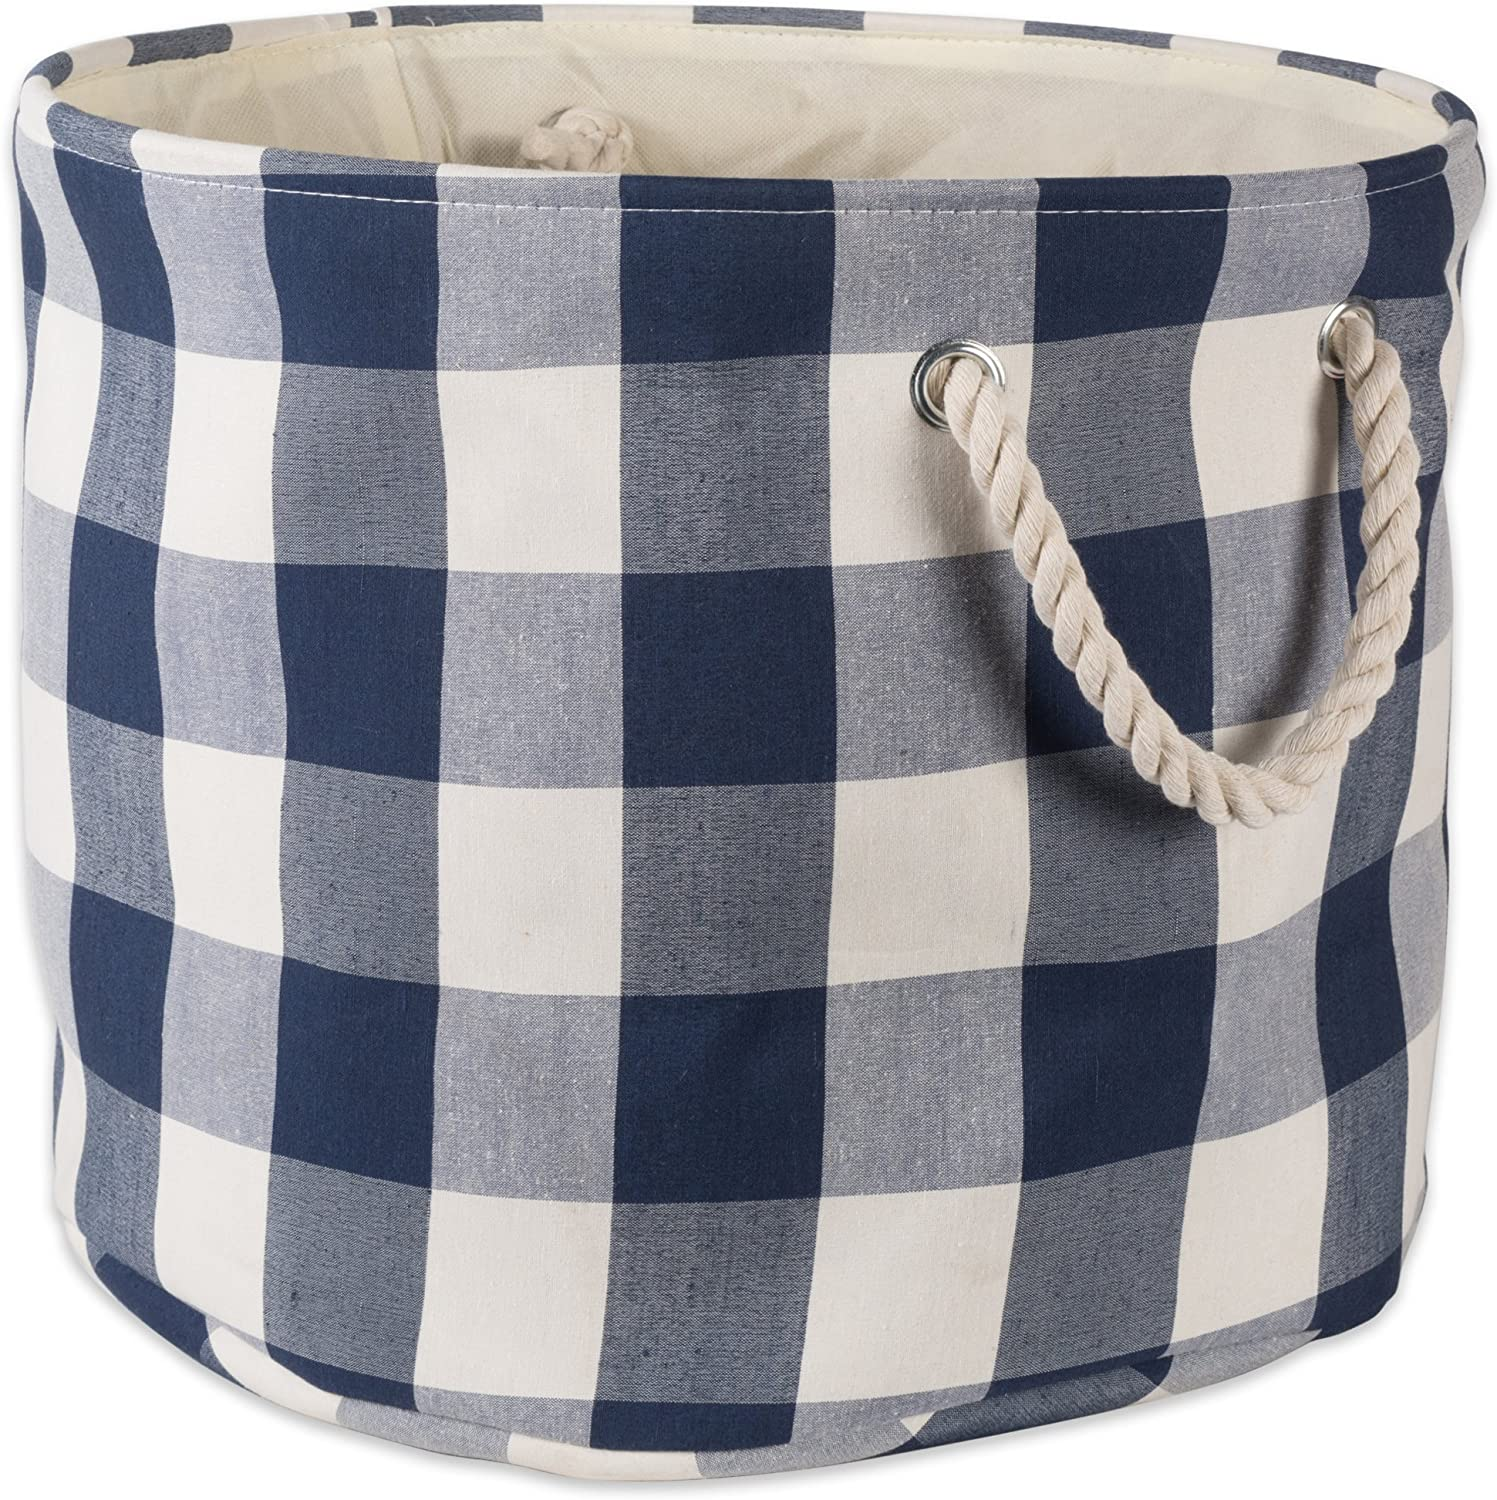 DII CAMZ10464 Polyester Storage Basket or Bin with Durable Cotton Handles, Home Organizer Solution for Office, Bedroom, Closet, Toys, Laundry, Large Round, Navy & Off-White